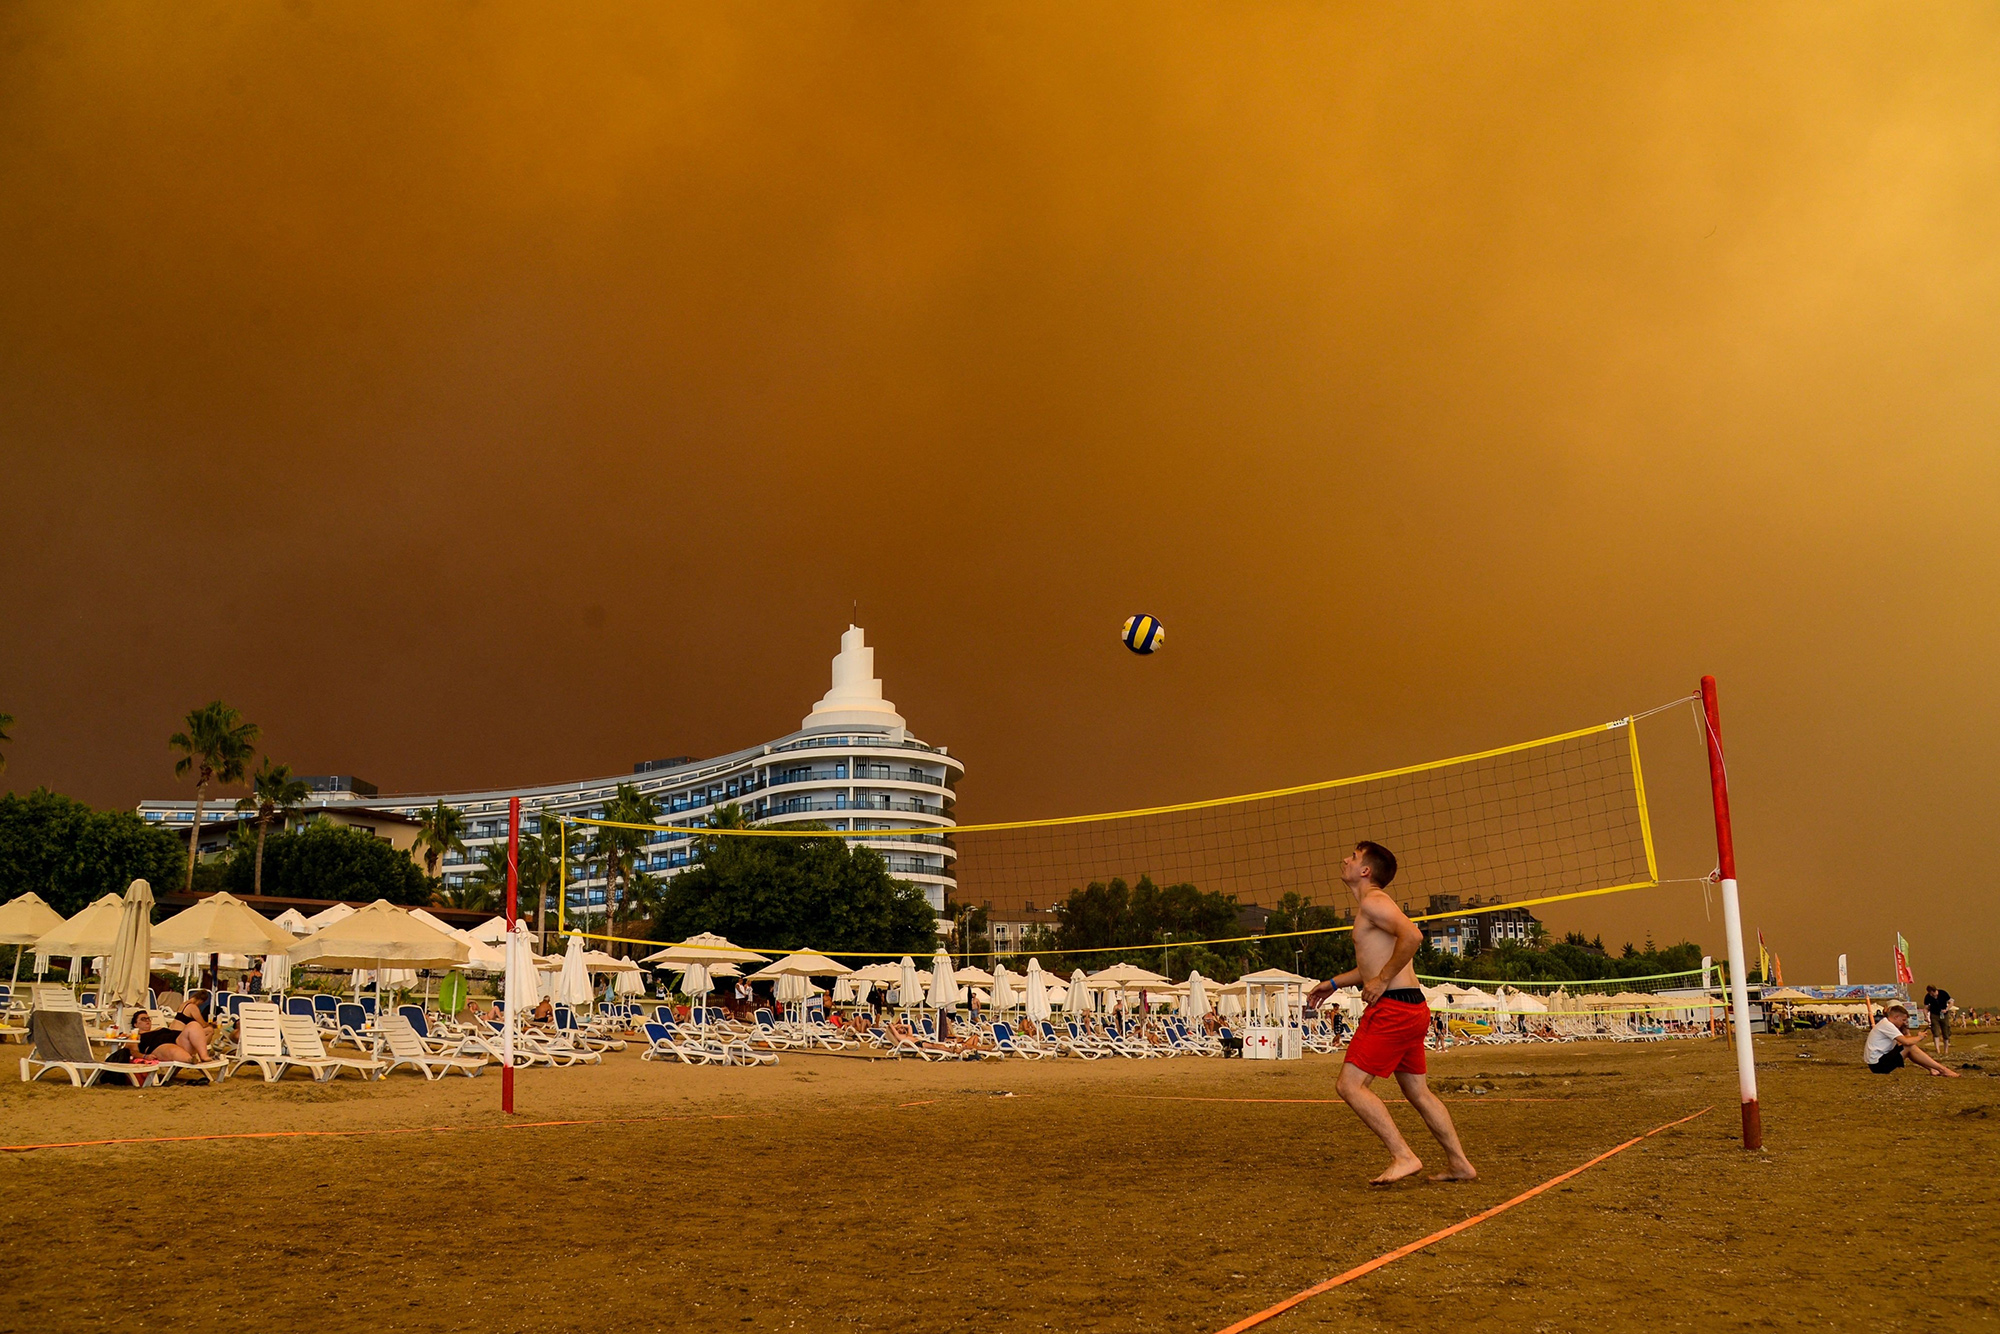 Dark smoke drifts over a hotel complex during a massive forest fire which engulfed a Mediterranean resort region on Turkey's southern coast near the town of Manavgat, on July 29, 2021. - At least three people were reported dead on July 29, 2021 and more than 100 injured as firefighters battled blazes engulfing a Mediterranean resort region on Turkey's southern coast. Officials also launched an investigation into suspicions that the fires that broke out Wednesday in four locations to the east of the tourist hotspot Antalya were the result of arson.